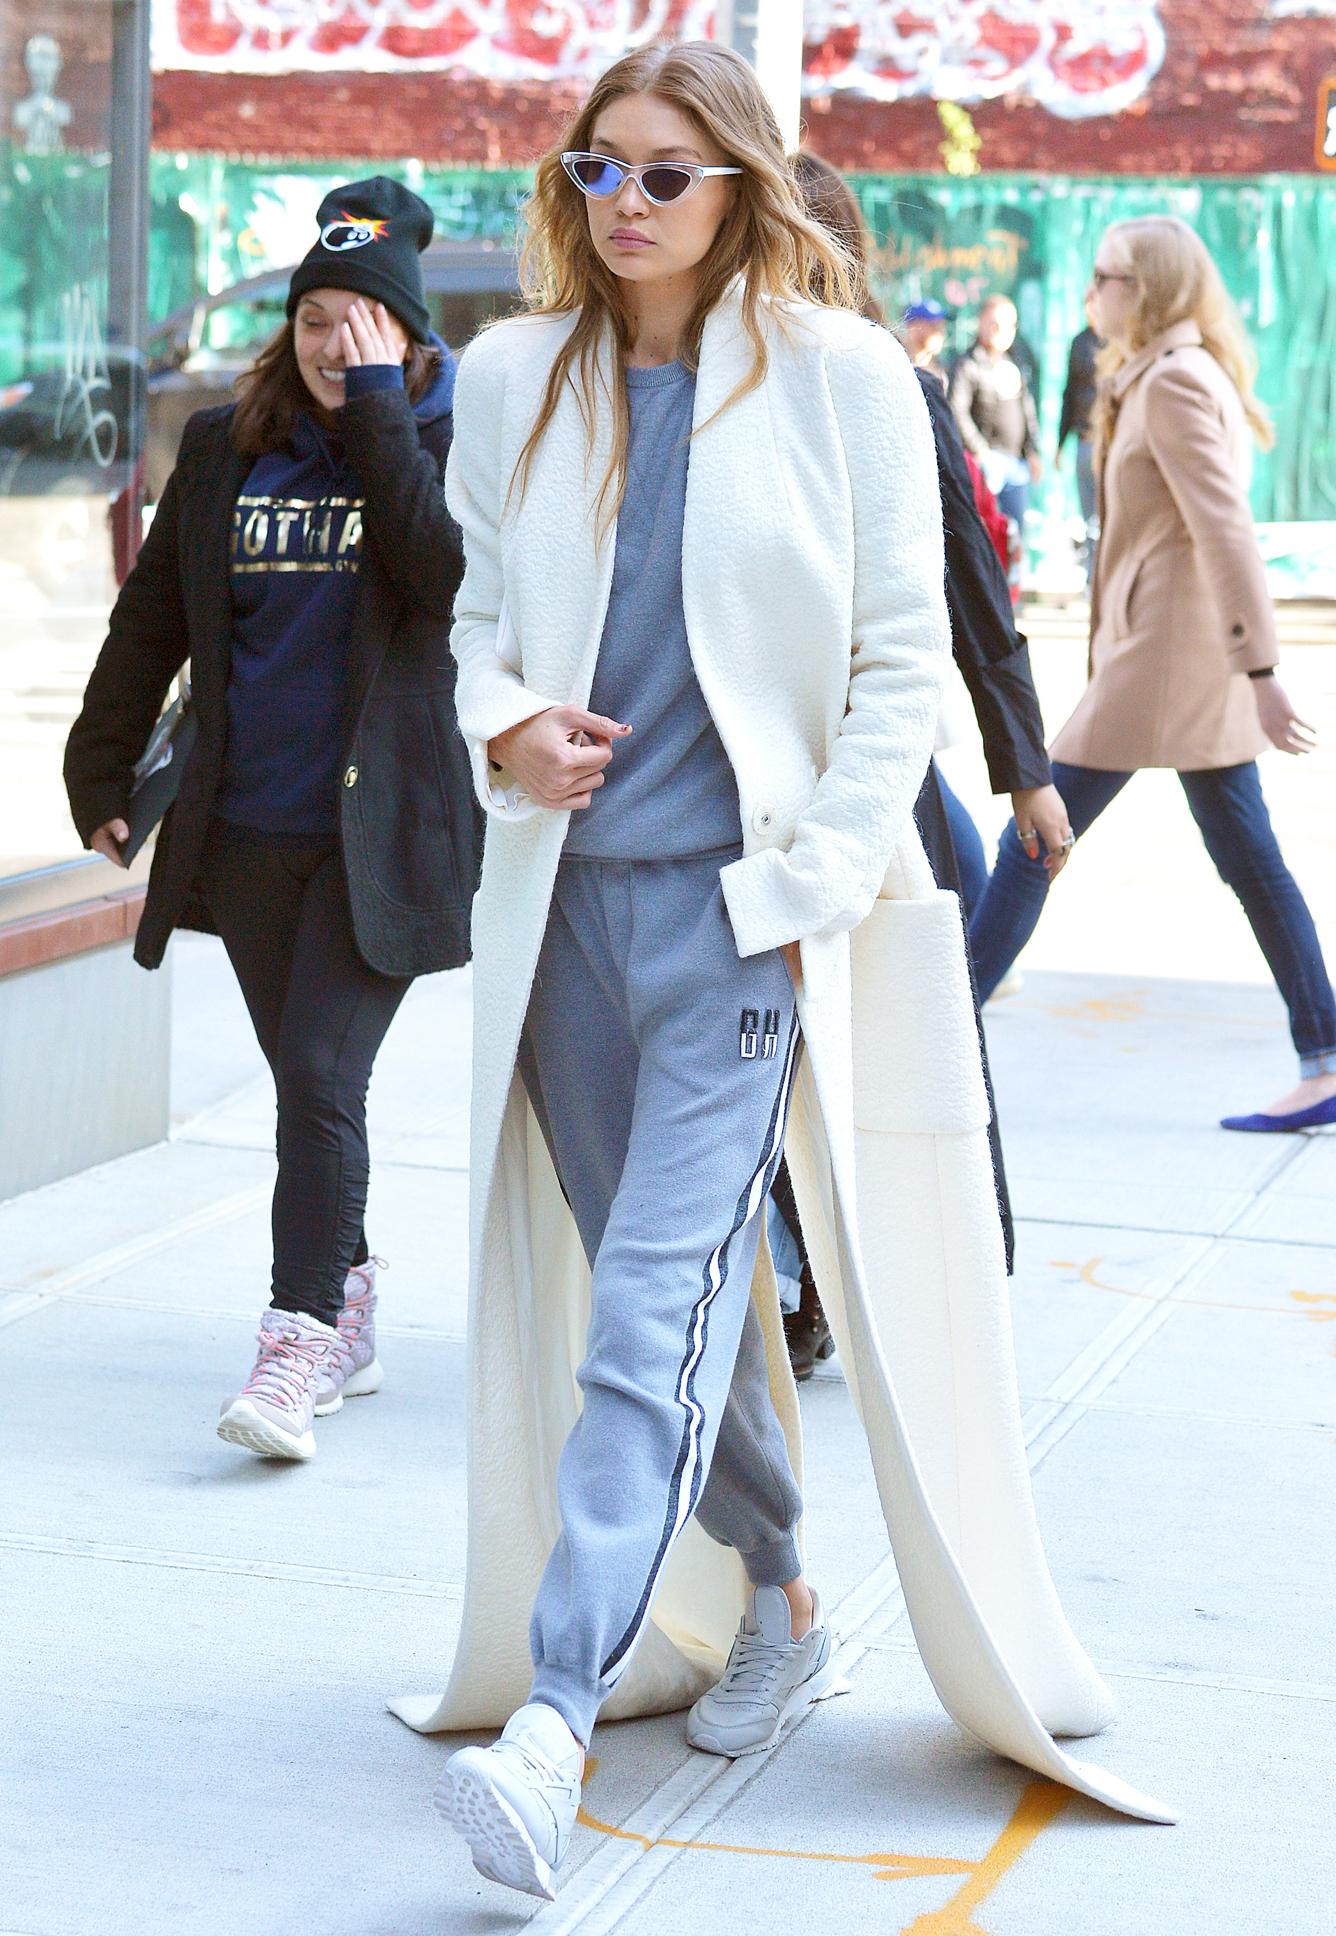 Gigi Hadid Dons a Sidewalk-Skimming White Coat in N.Y.C.